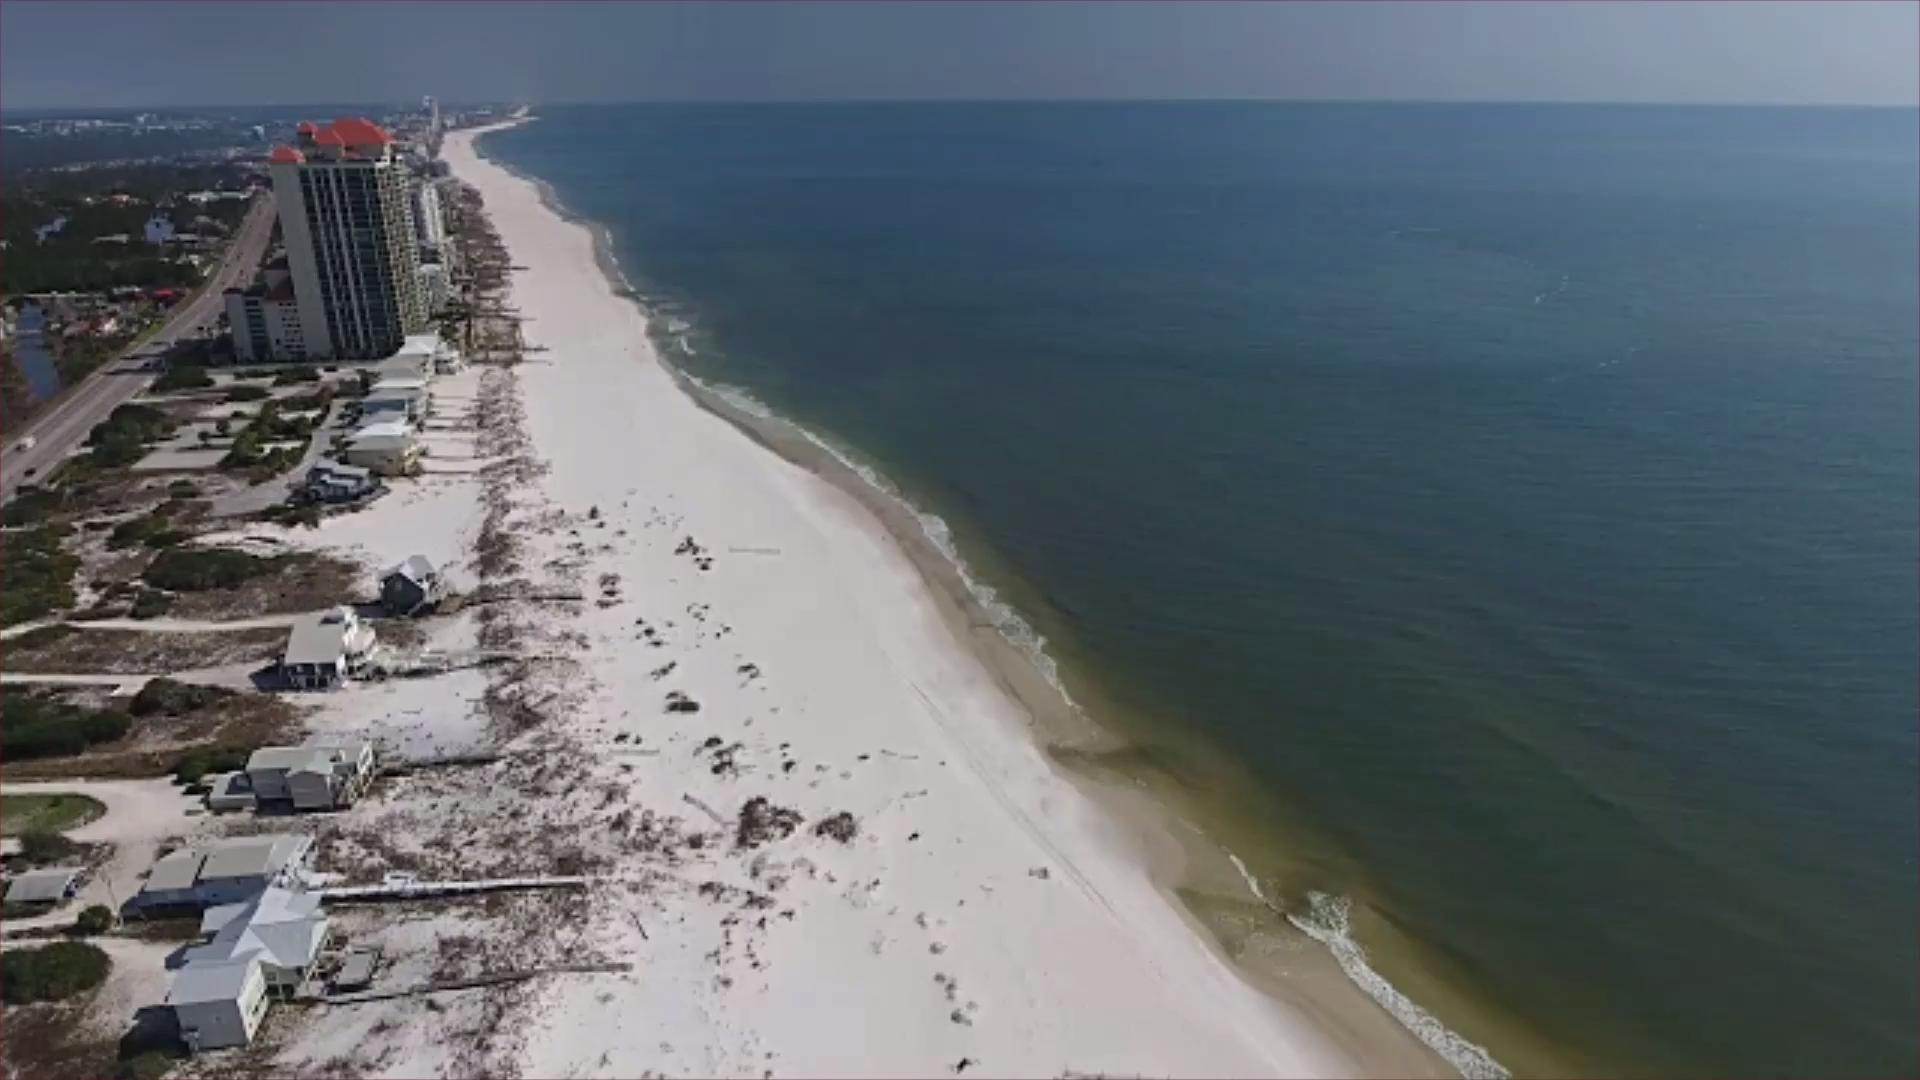 Need Things to Do in Gulf Shores? Here are our Recommendations